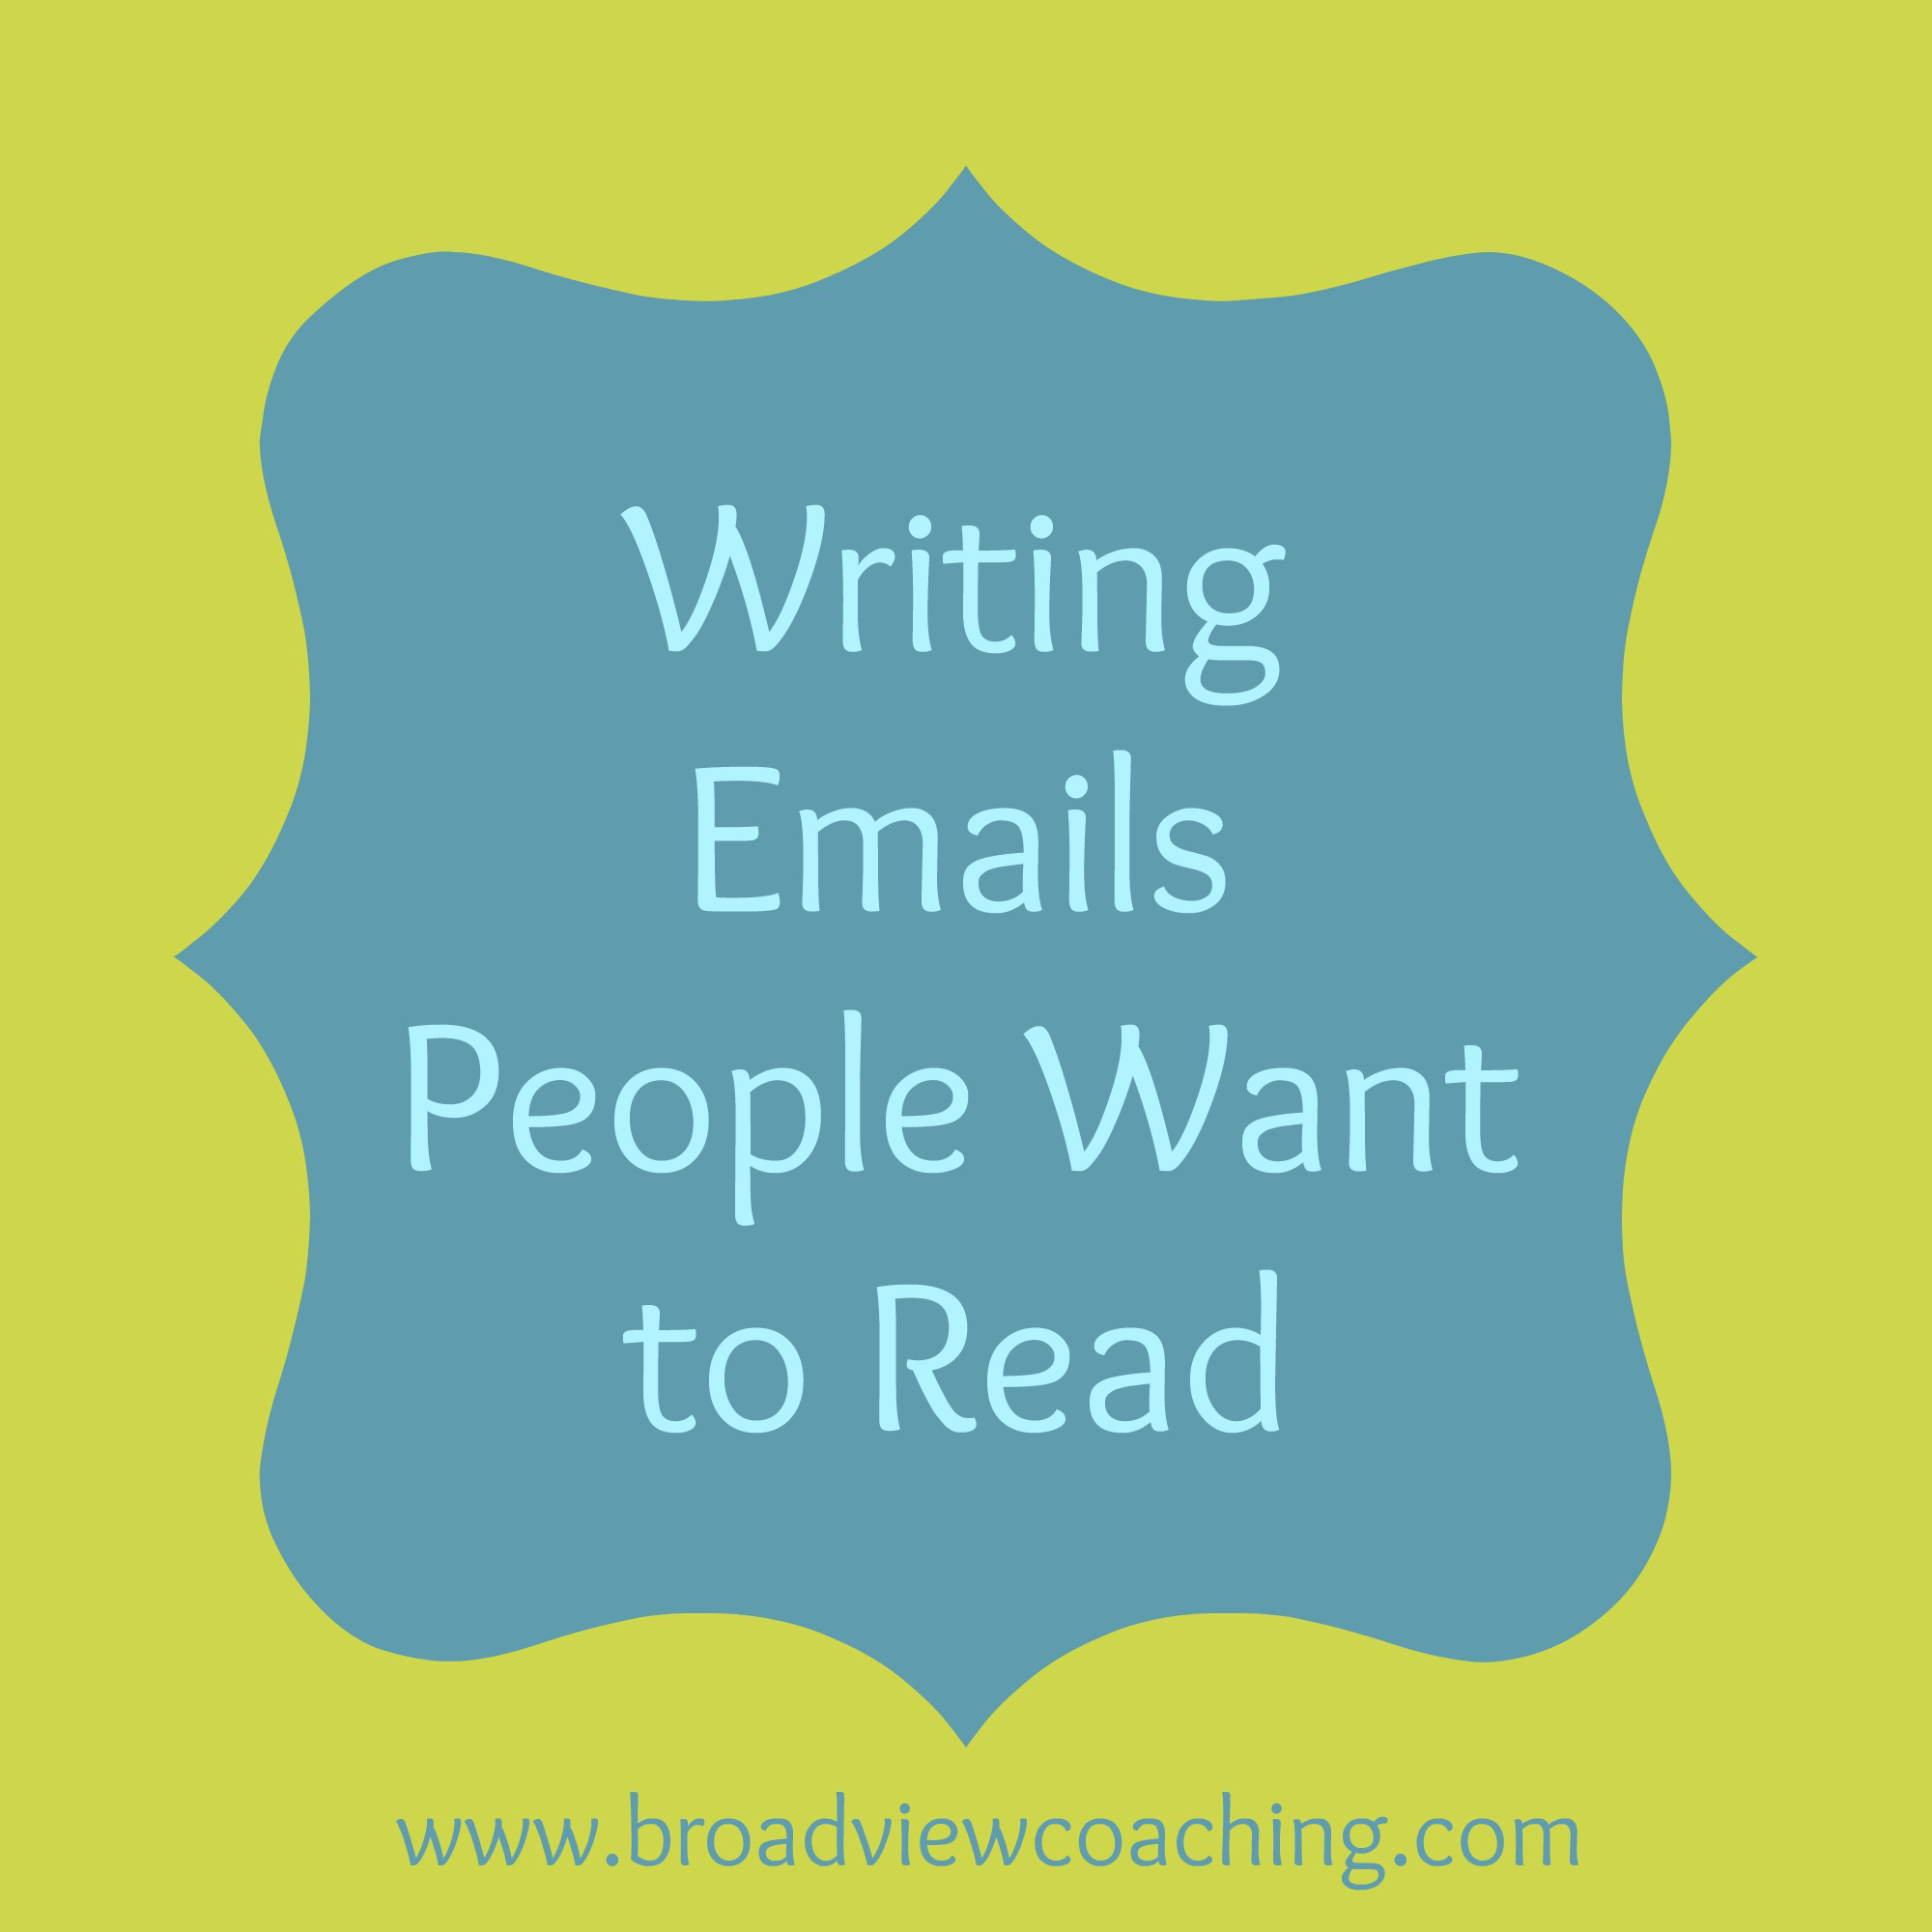 How to write emails people want to read